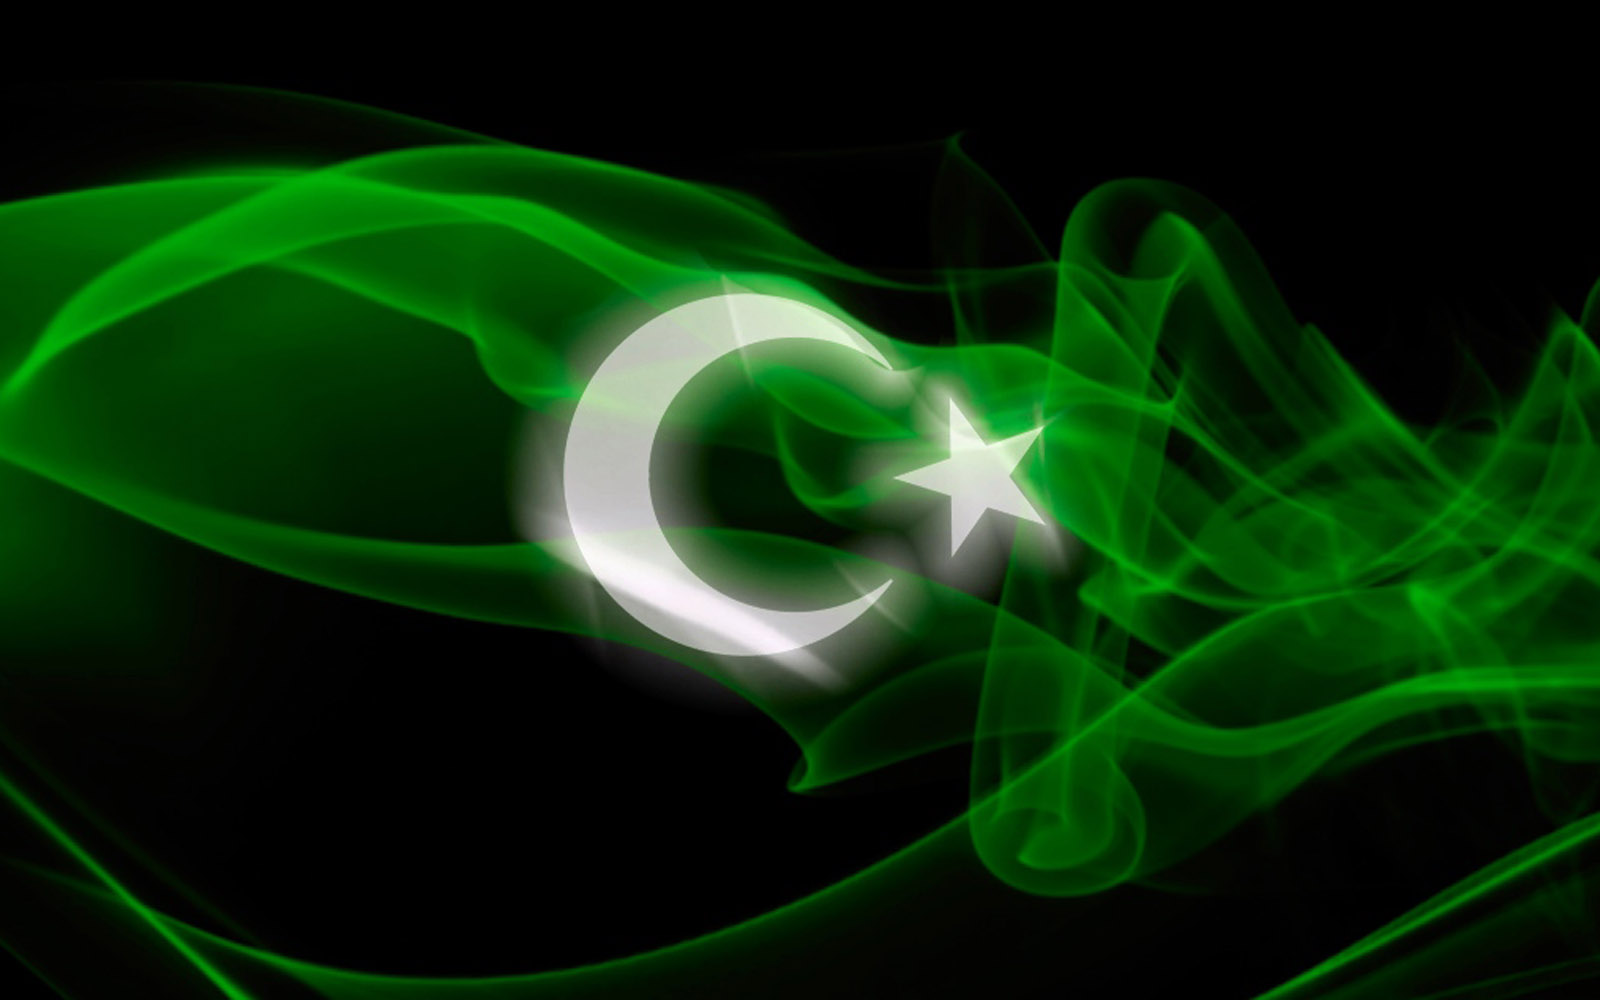 PPP Hd: Pakistan Flag Beautiful Wallpapers